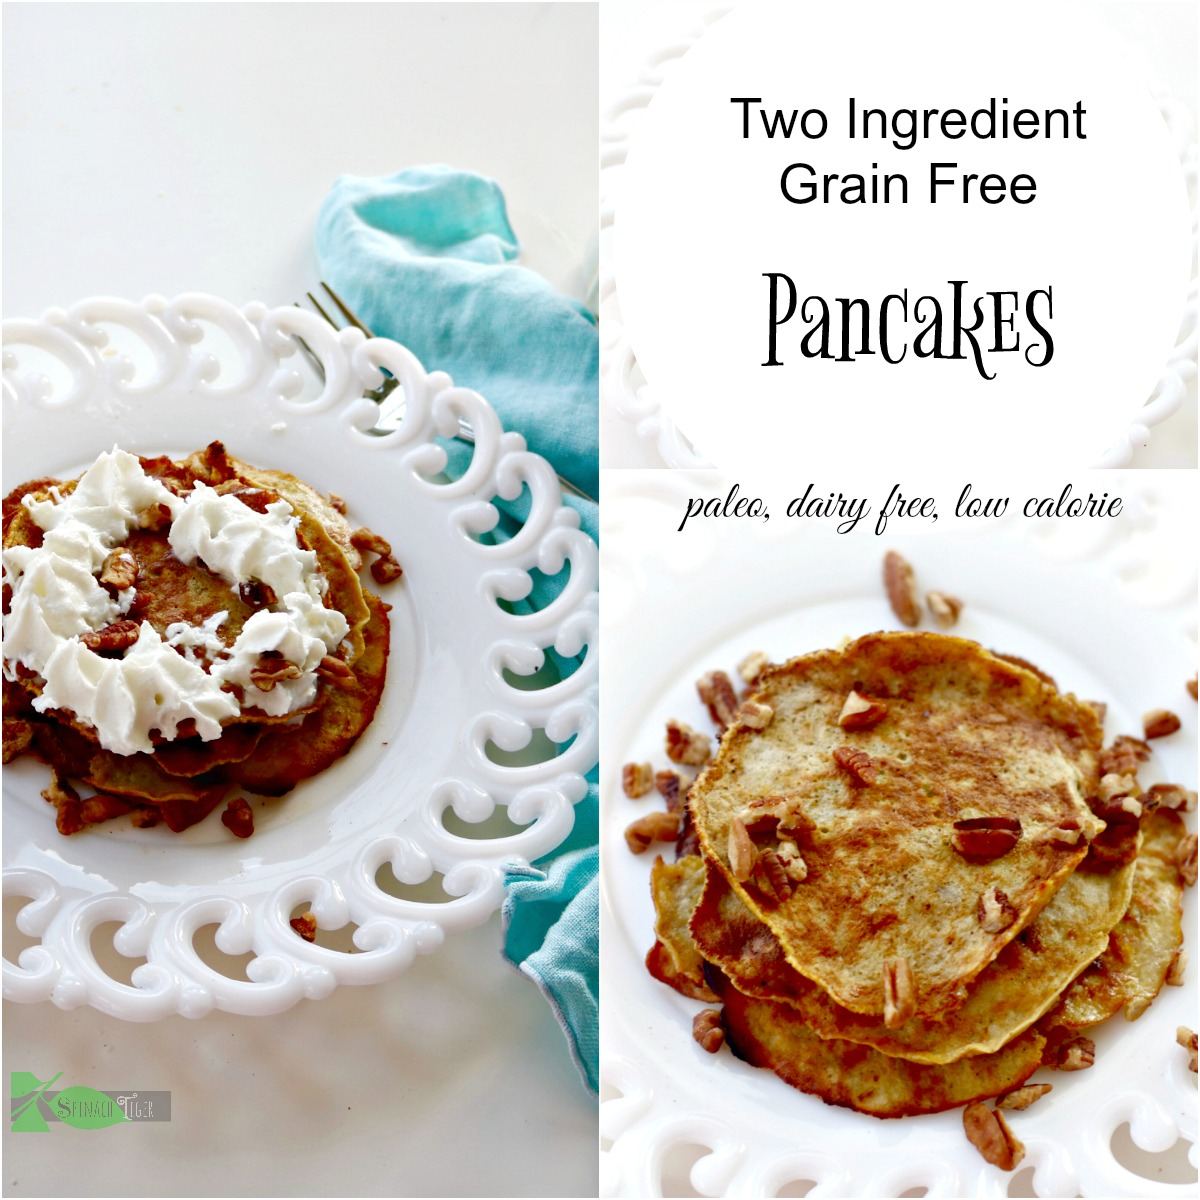 Two Ingredient Pancakes from Spinach tiger